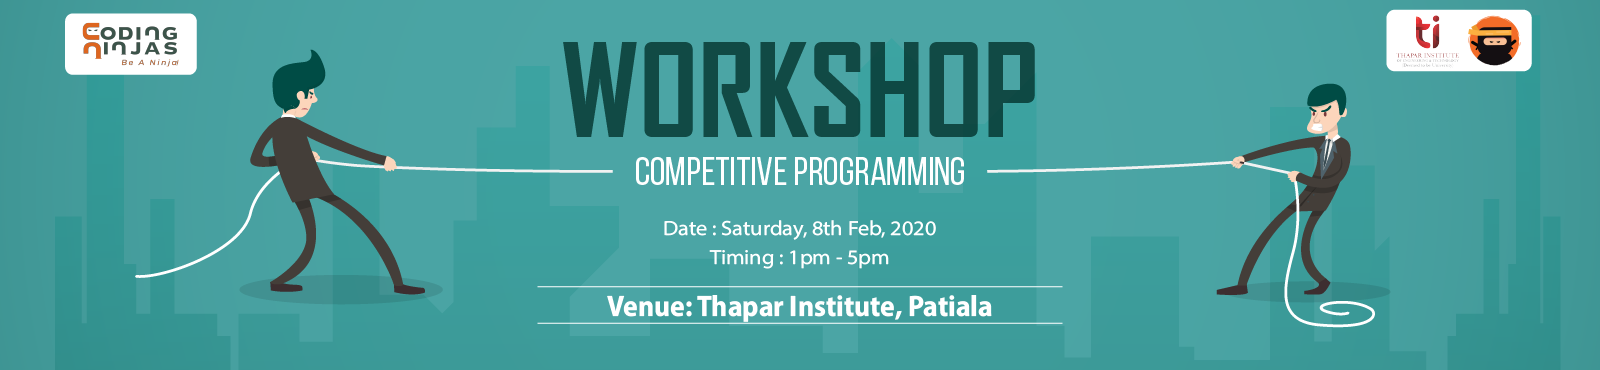 Workshop on Competitive Programming at Thapar Institute of Engineering & Technology, Patiala